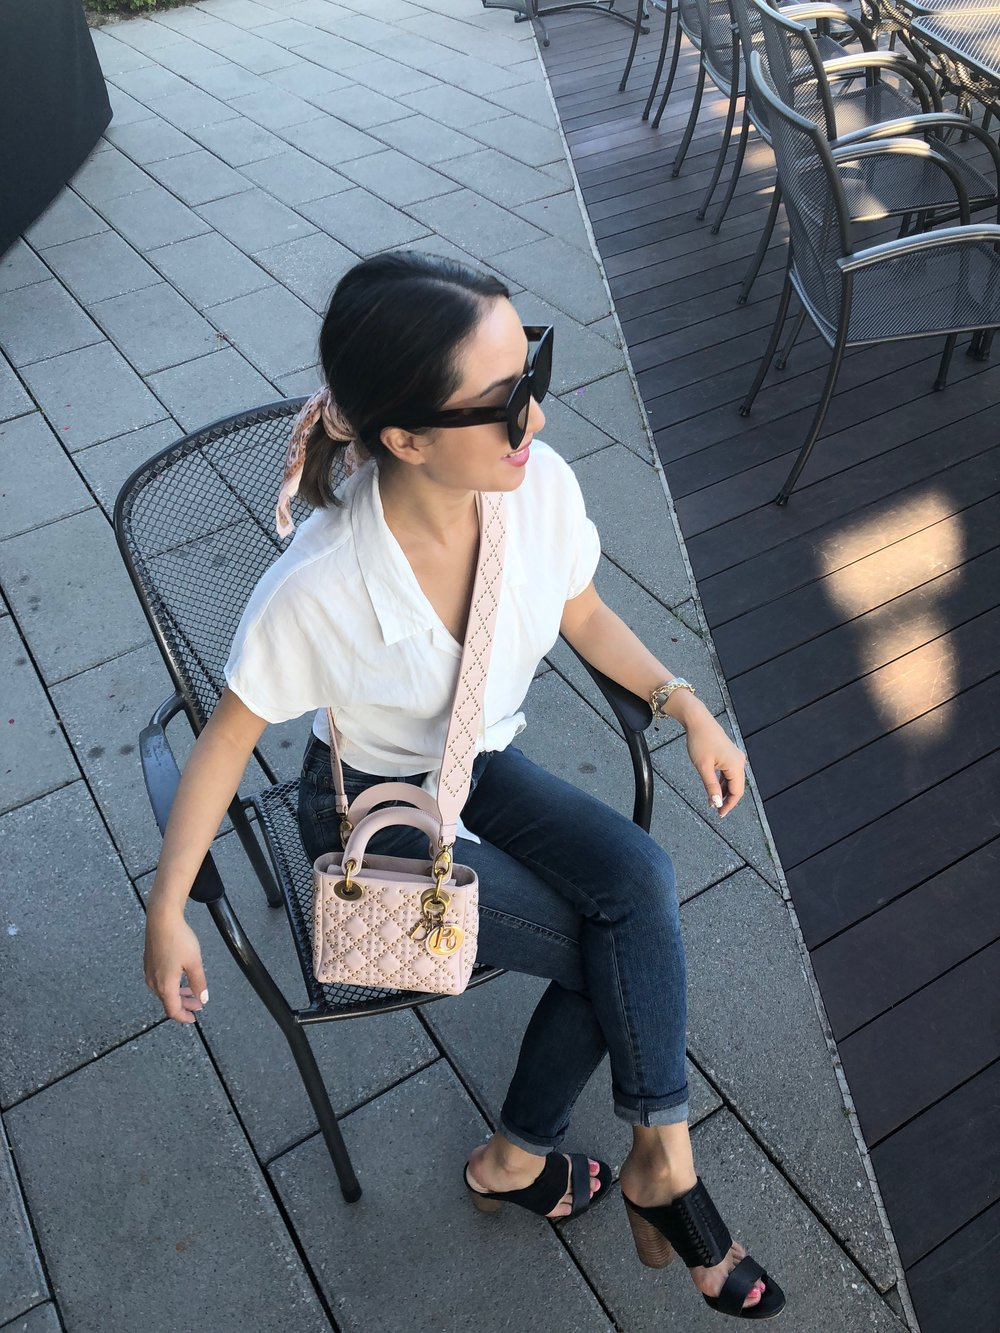 classic - Top: AritziaJeans: AgoldeBag: DiorShoes: Vince Camuto